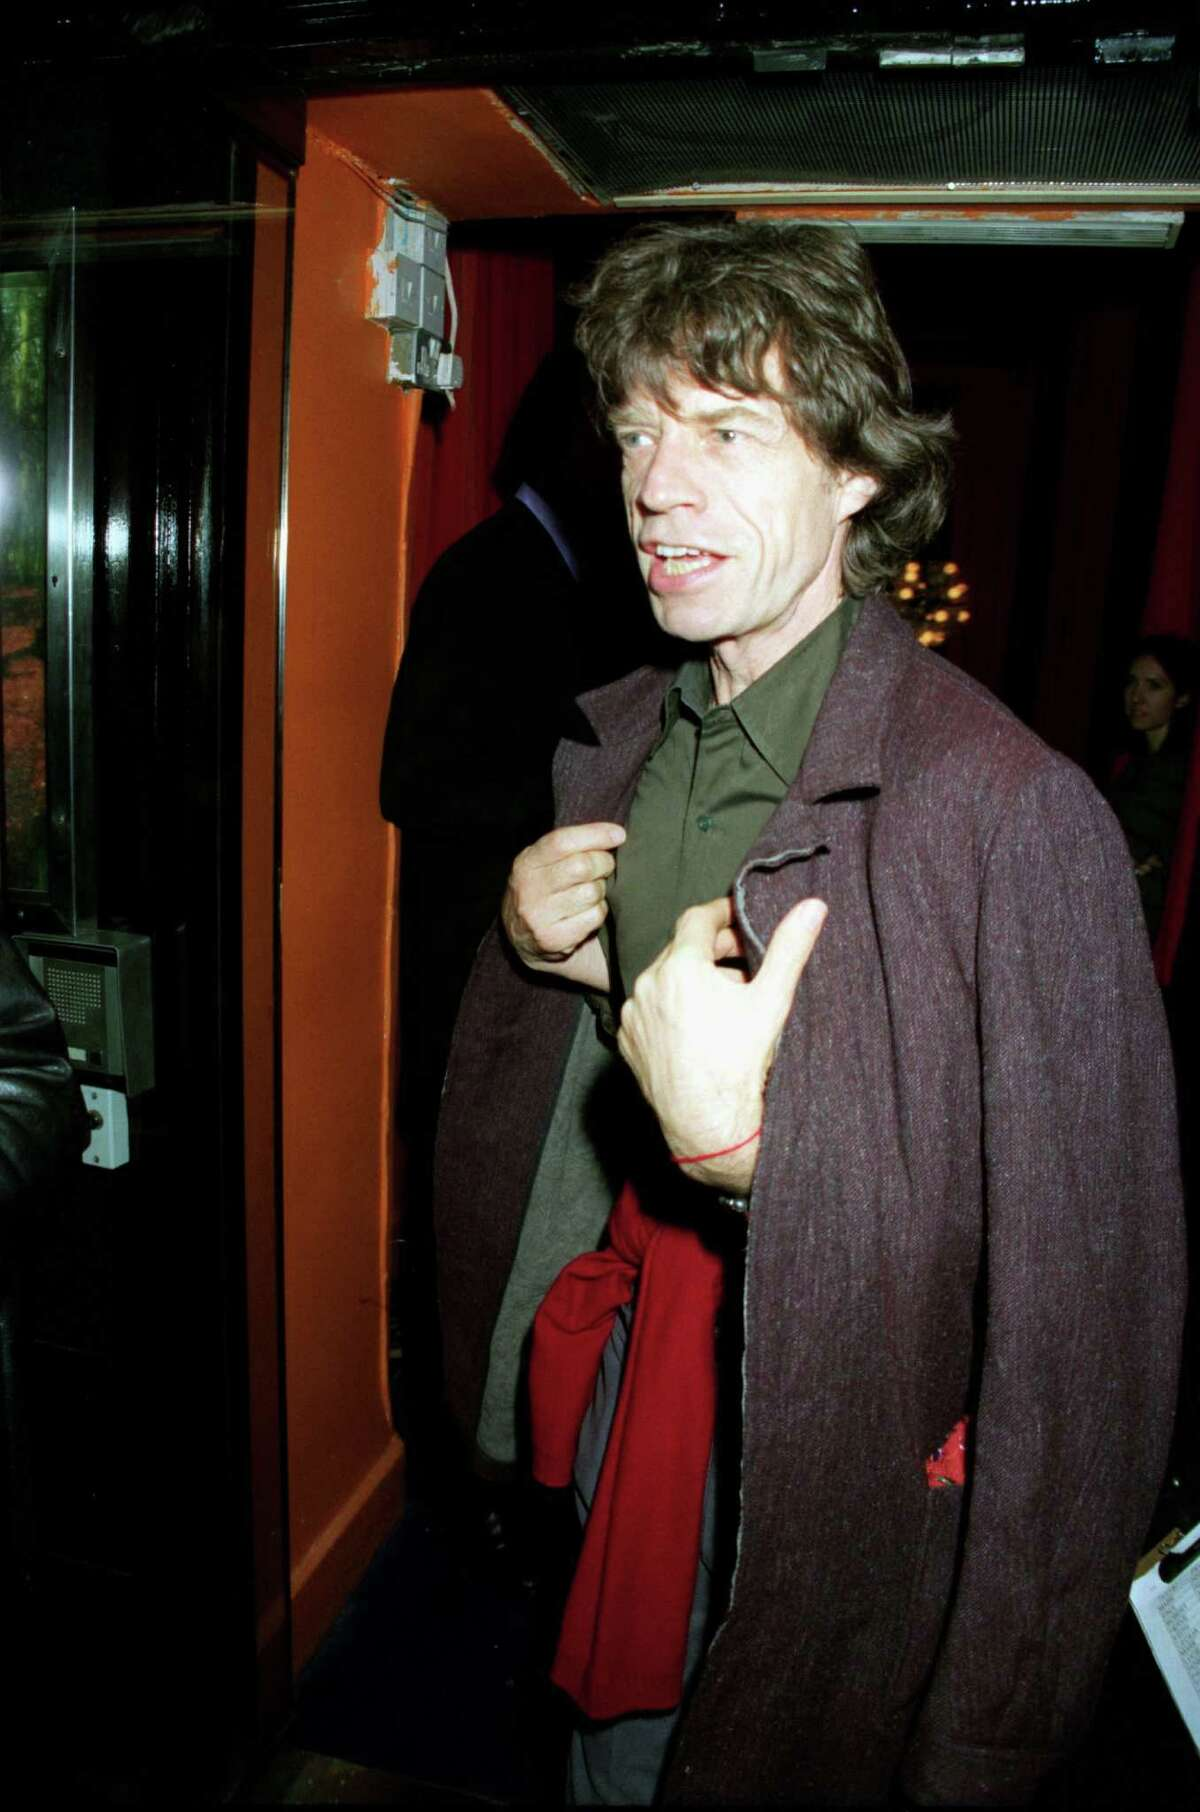 Rolling Stones singer Mick Jagger arrives before a rare and intimate performance at The Shepherd's Bush Empire on December 03, 1999 in London. (Photo by Dave Benett/Getty Images).